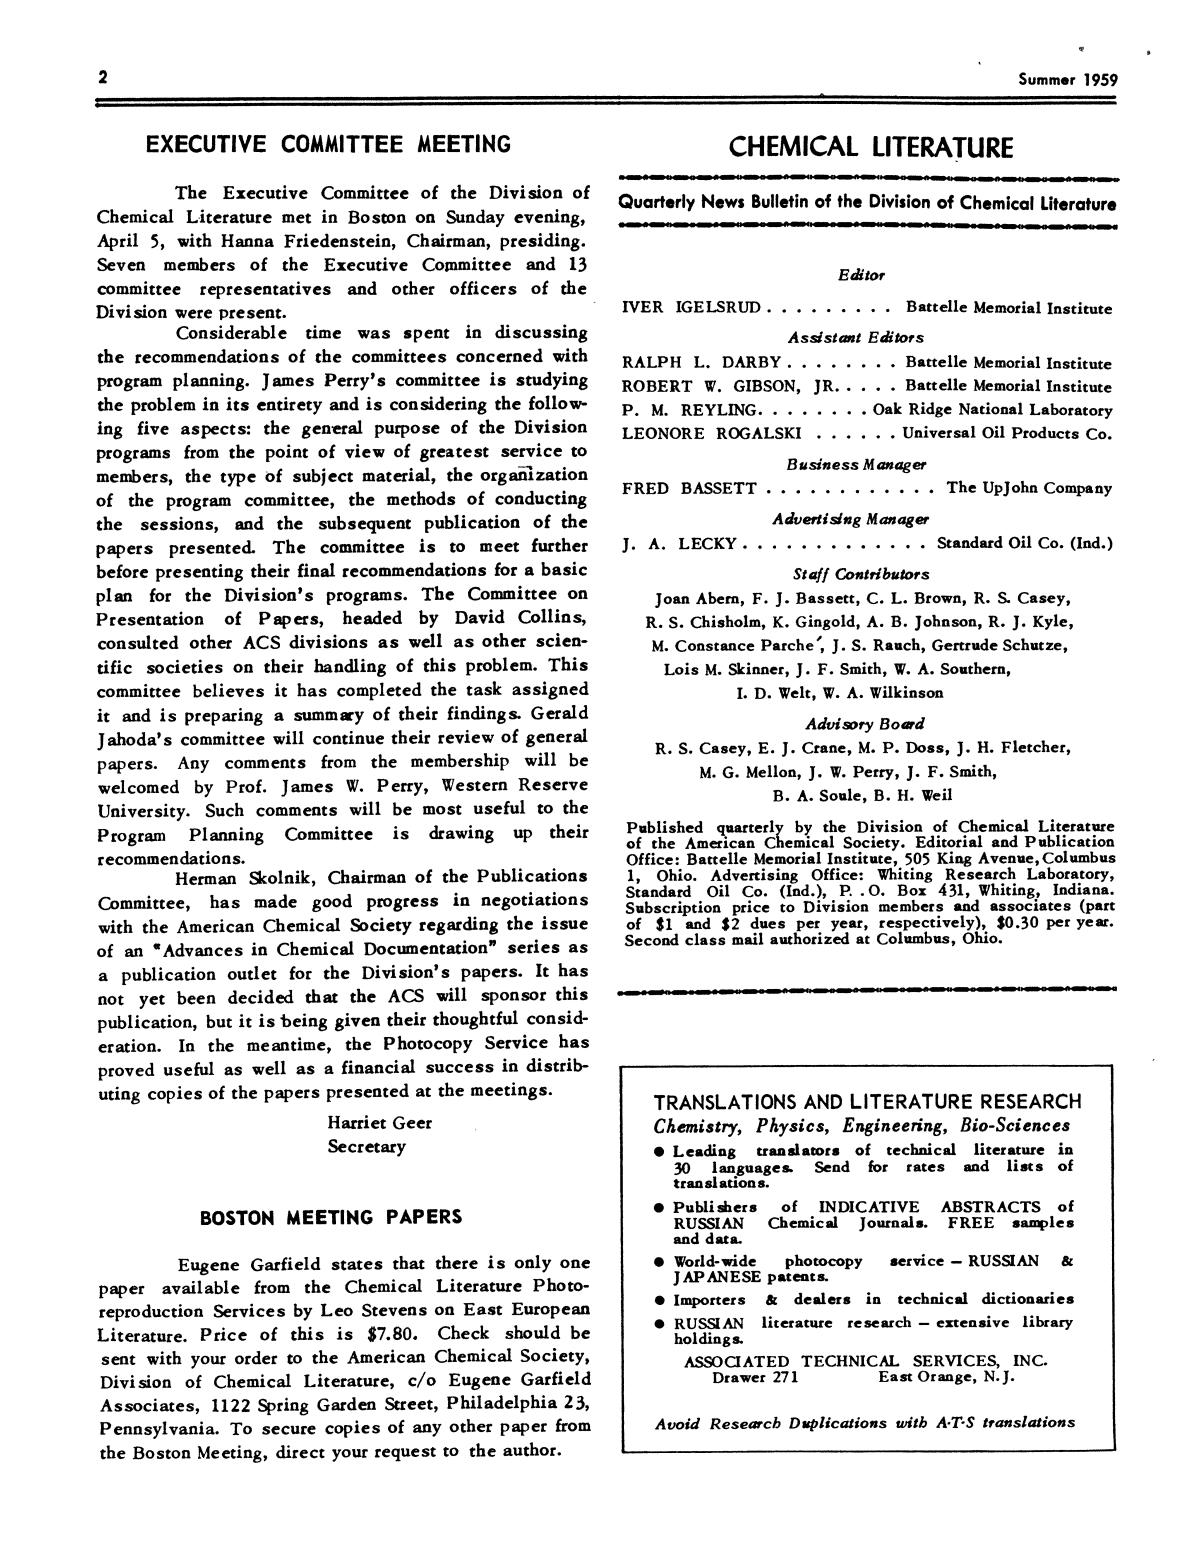 Chemical Literature, Volume 11, Number 2, Summer 1959                                                                                                      2